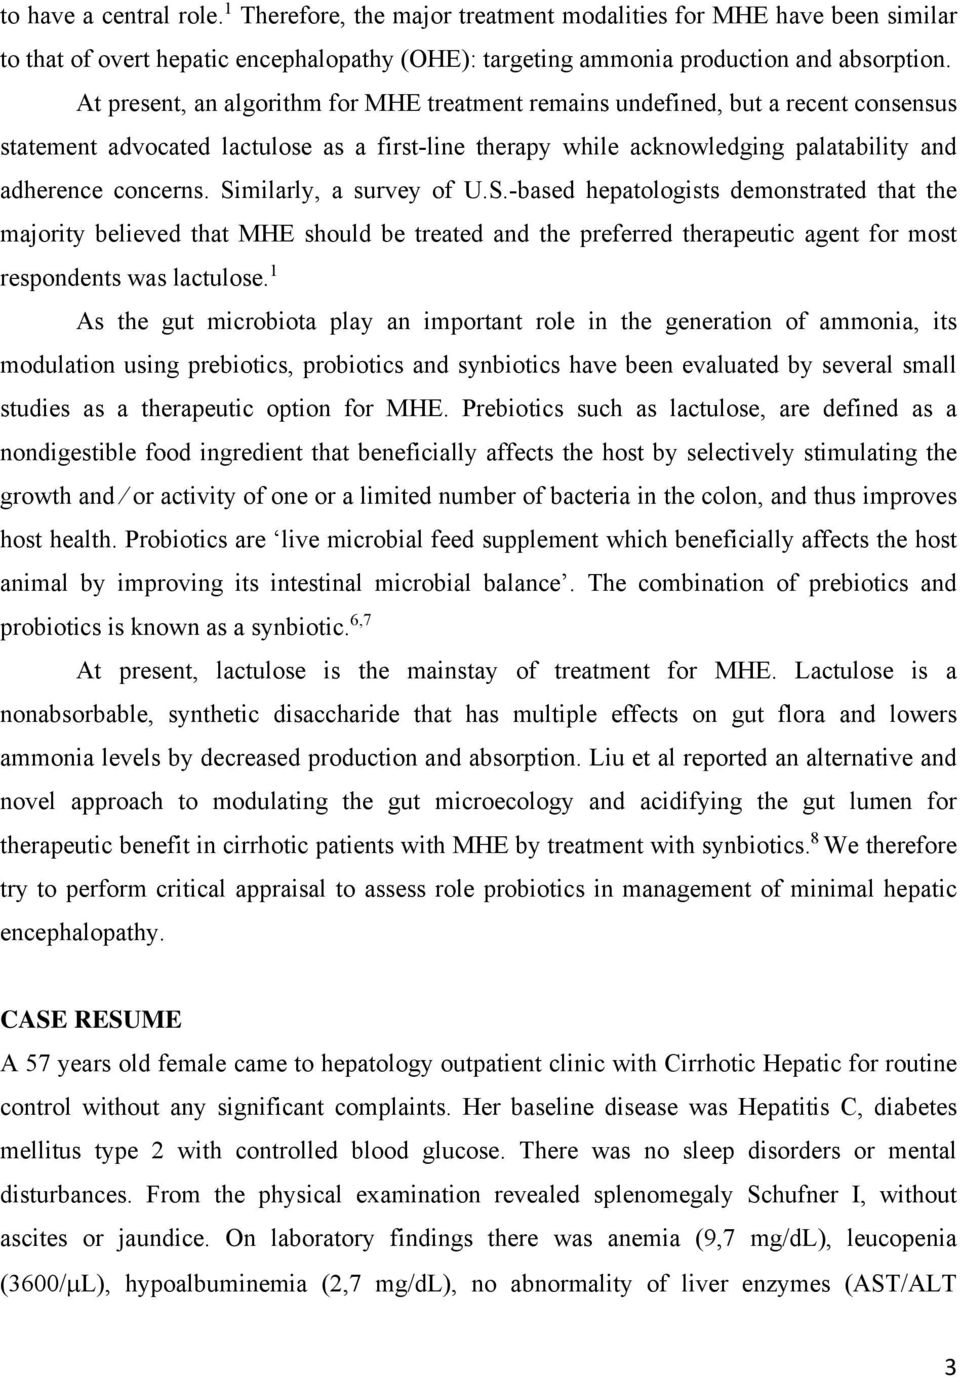 Similarly, a survey of U.S.-based hepatologists demonstrated that the majority believed that MHE should be treated and the preferred therapeutic agent for most respondents was lactulose.